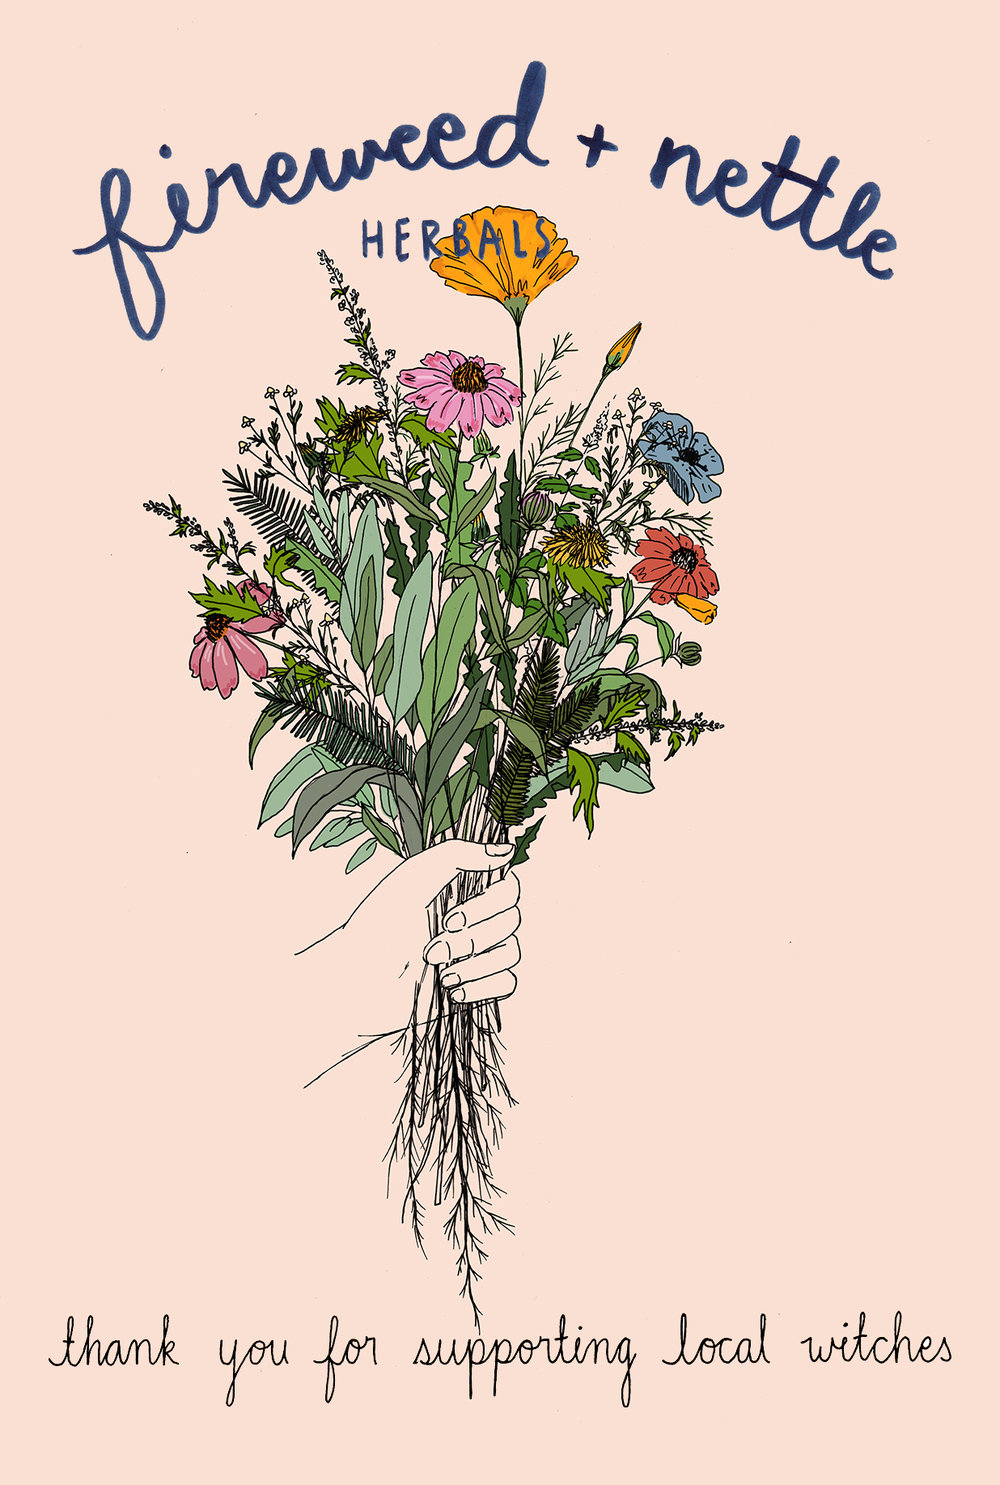 Postcard design for  Fireweed & Nettle,  2016